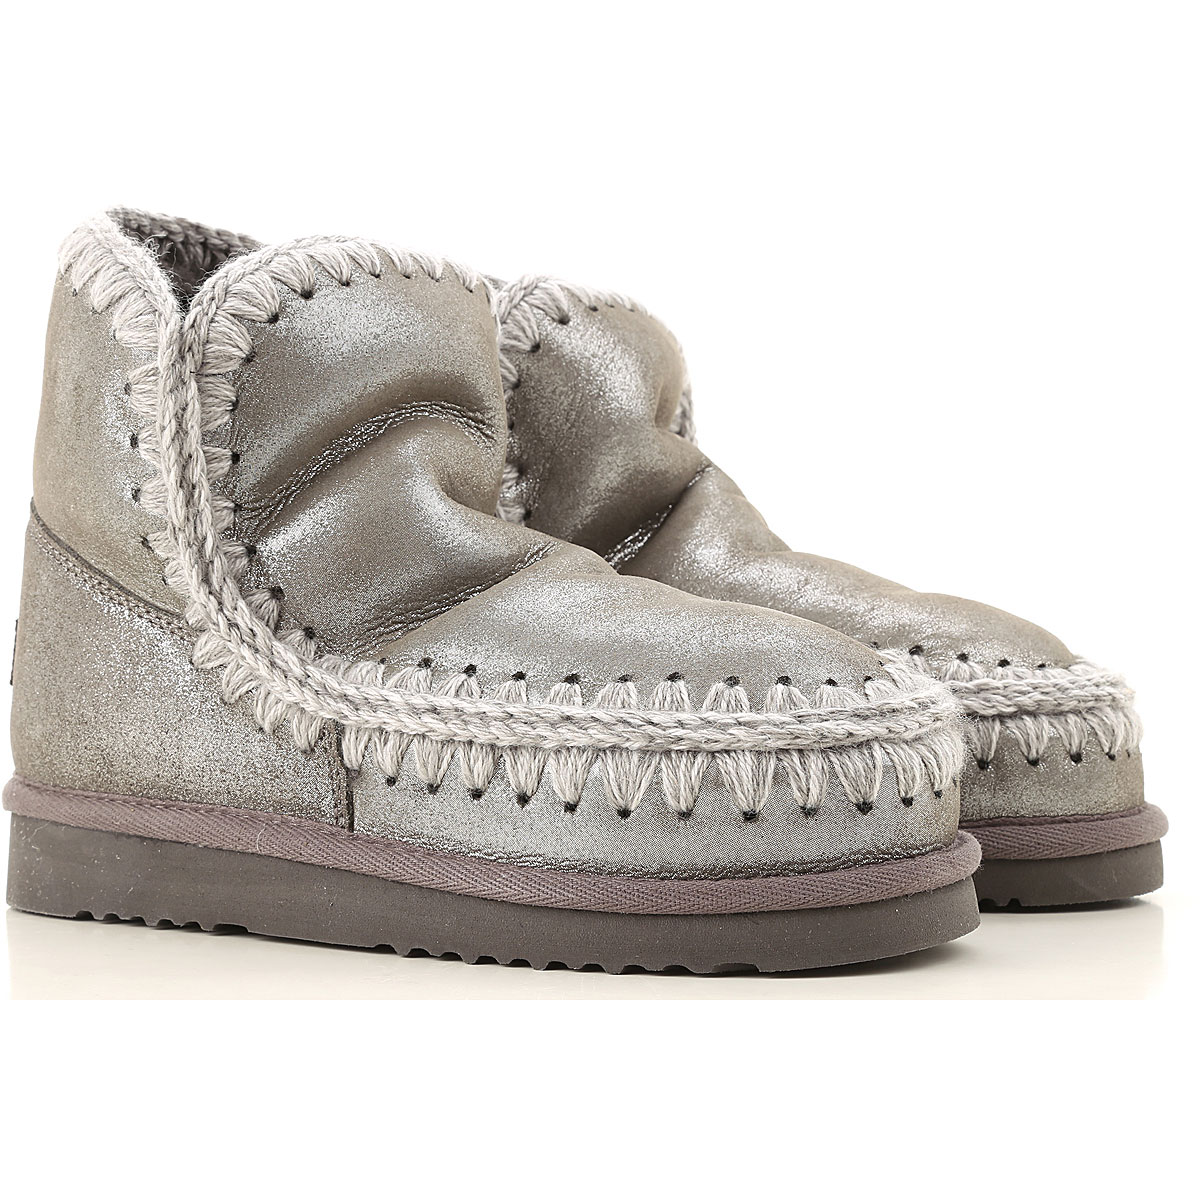 Mou Boots for Women, Booties On Sale, Silver, Suede leather, 2019, EUR 36 - UK 3 - USA 5.5 EUR 37 - UK 4 - USA 6.5 EUR 40 - UK 7 - USA 9.5